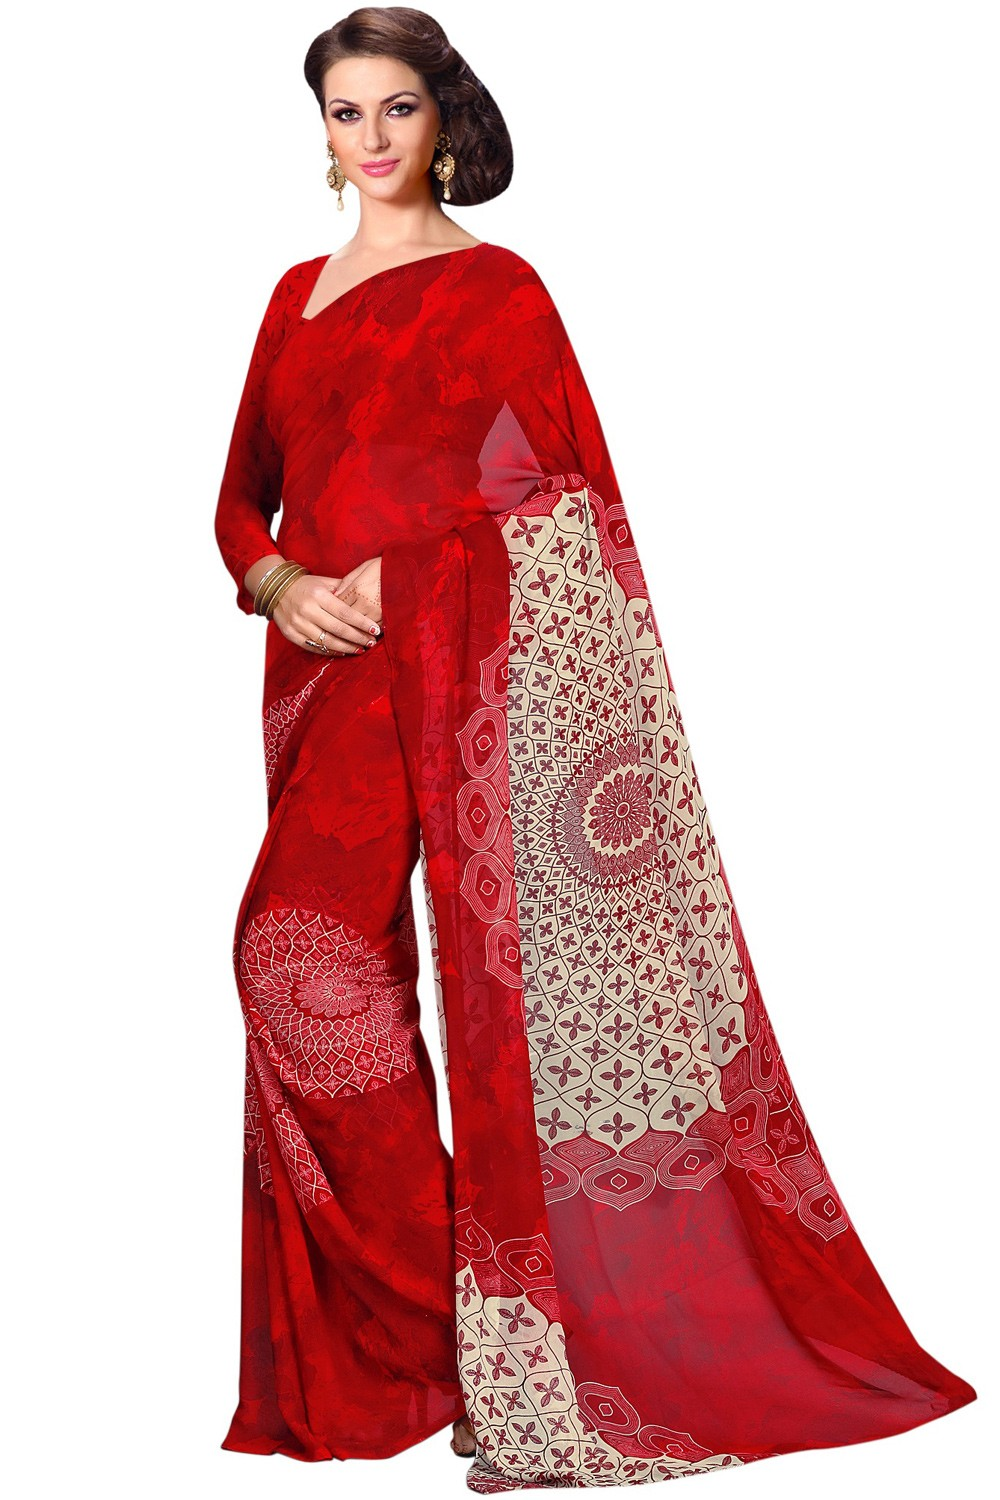 Paaneri Designer Red Color Gorgette Printed Saree Product Code-16120023812